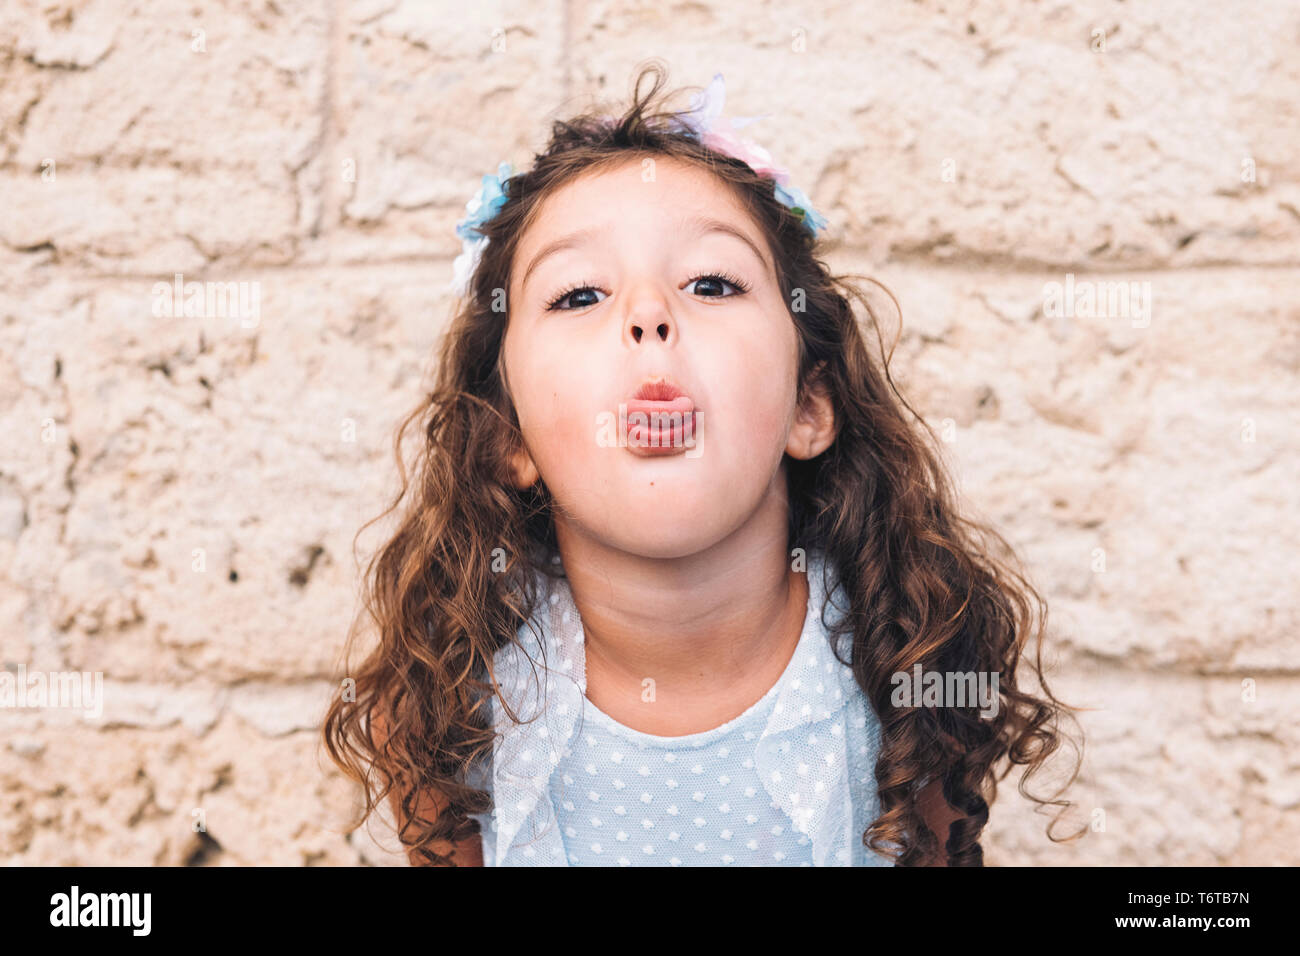 Teasing little girl sticking out her tongue, is in front of a stone wall and wears a blue dress and a flower headband Stock Photo